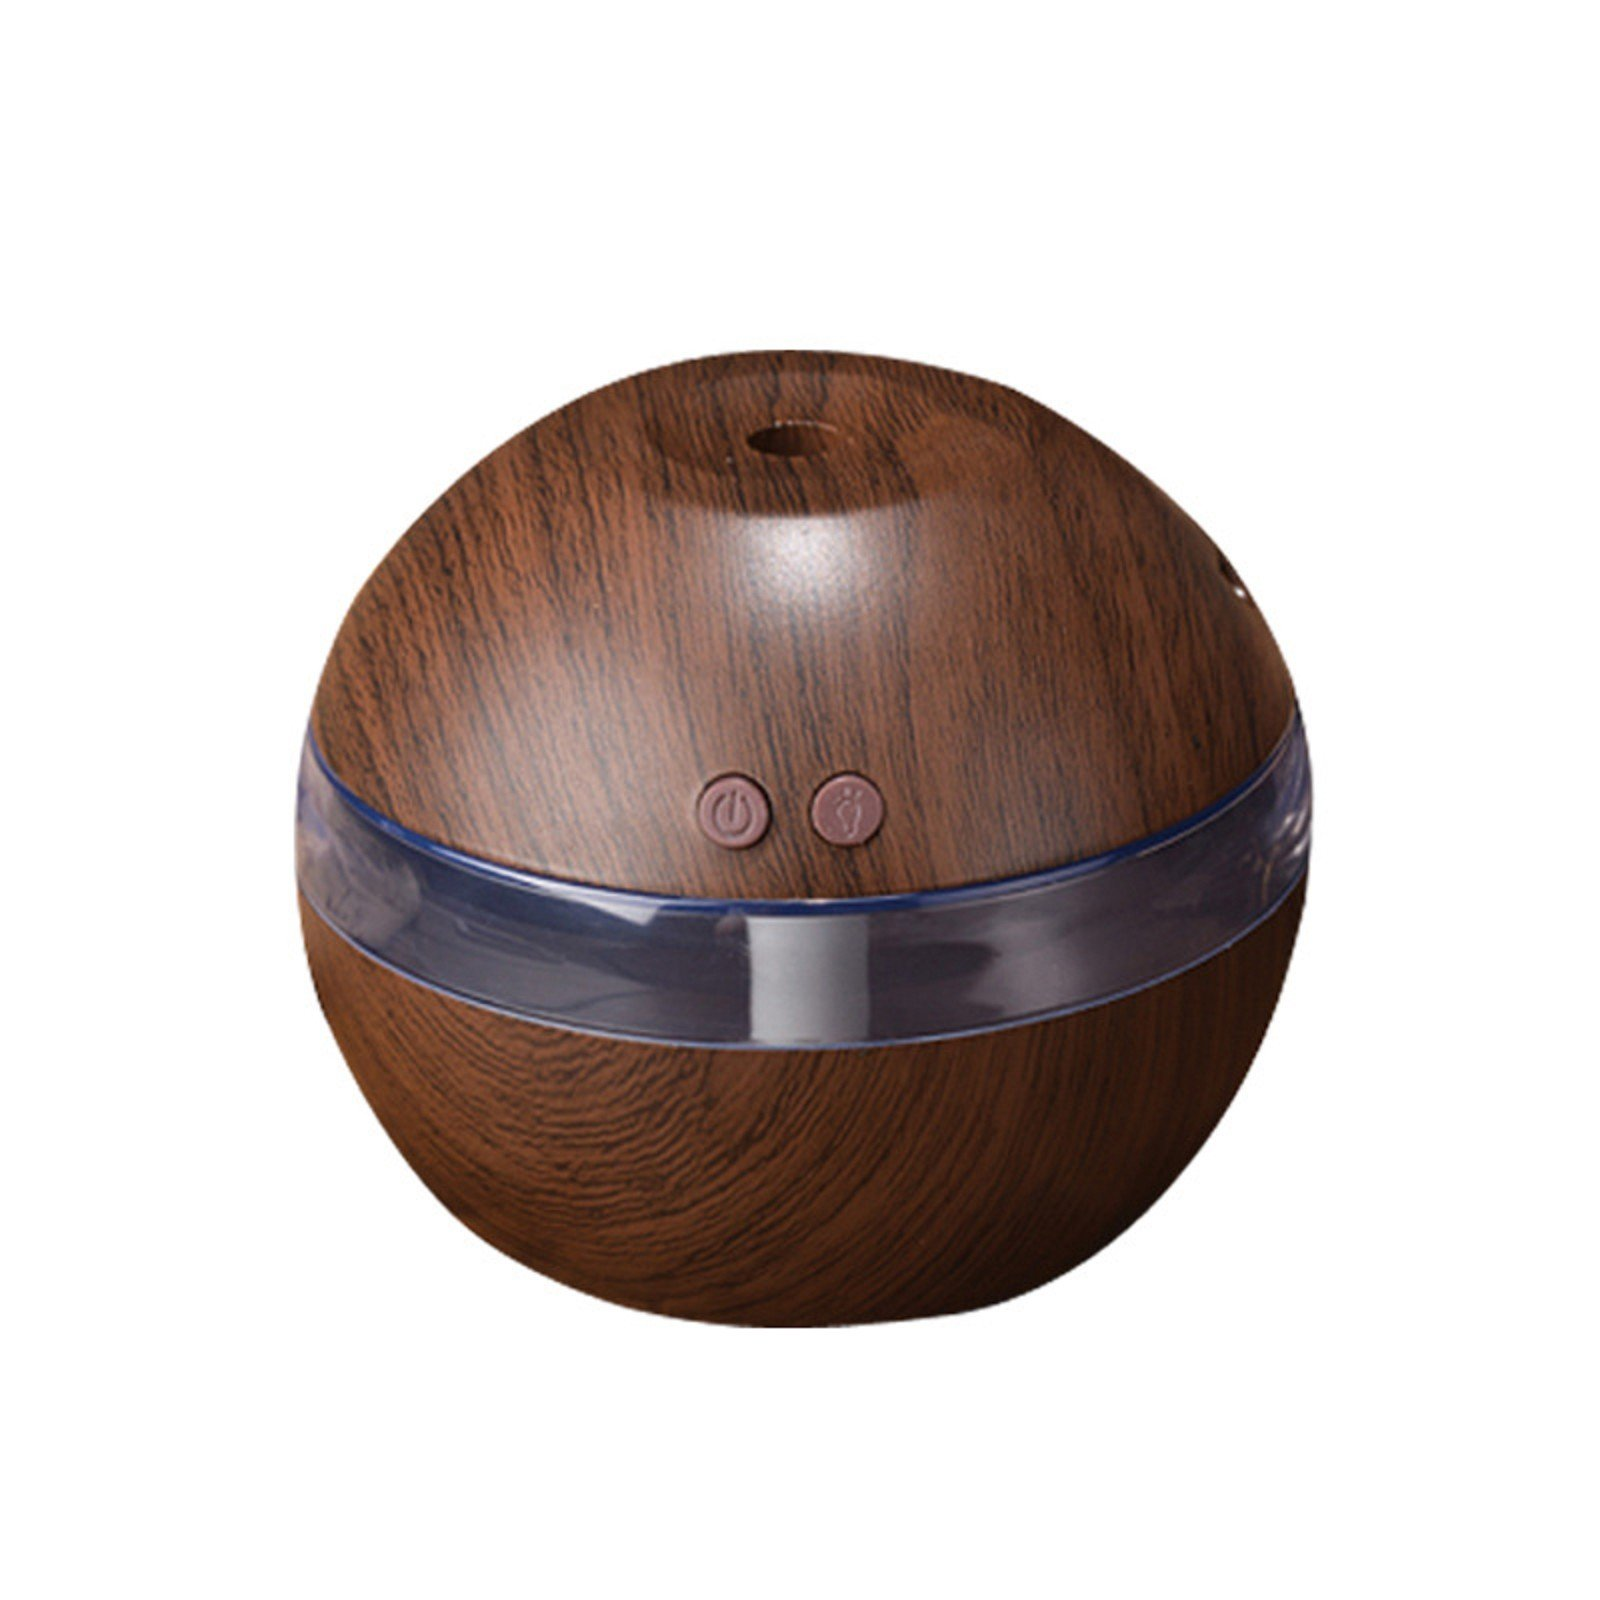 MZS Tec Usb Wooden Grain Diffuser, Cool Mist Humidifier, Aromatherapy Essential Oil Diffuser Noiseless Diffusers, Home Office Ornament (Deep grain)